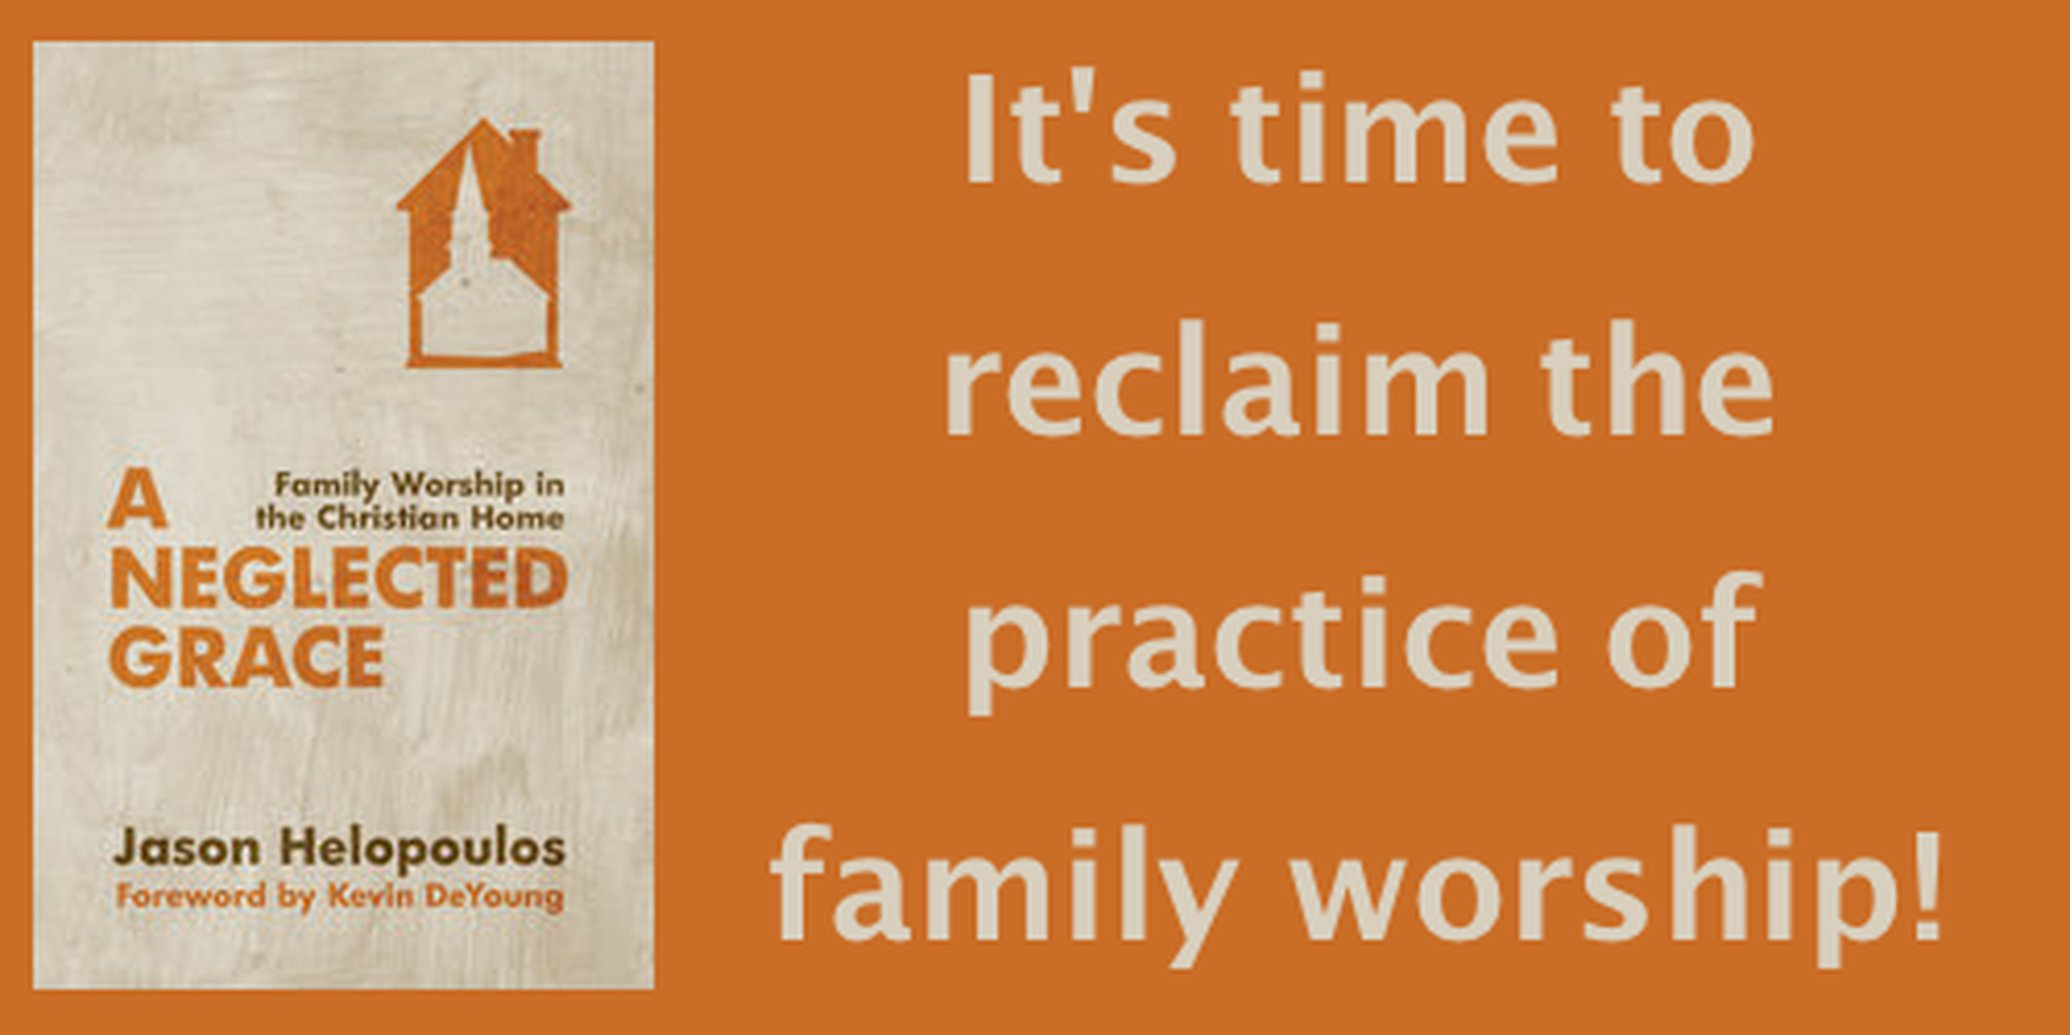 A Neglected Grace: Family Worship in the Christian Home by Jason Helopoulos